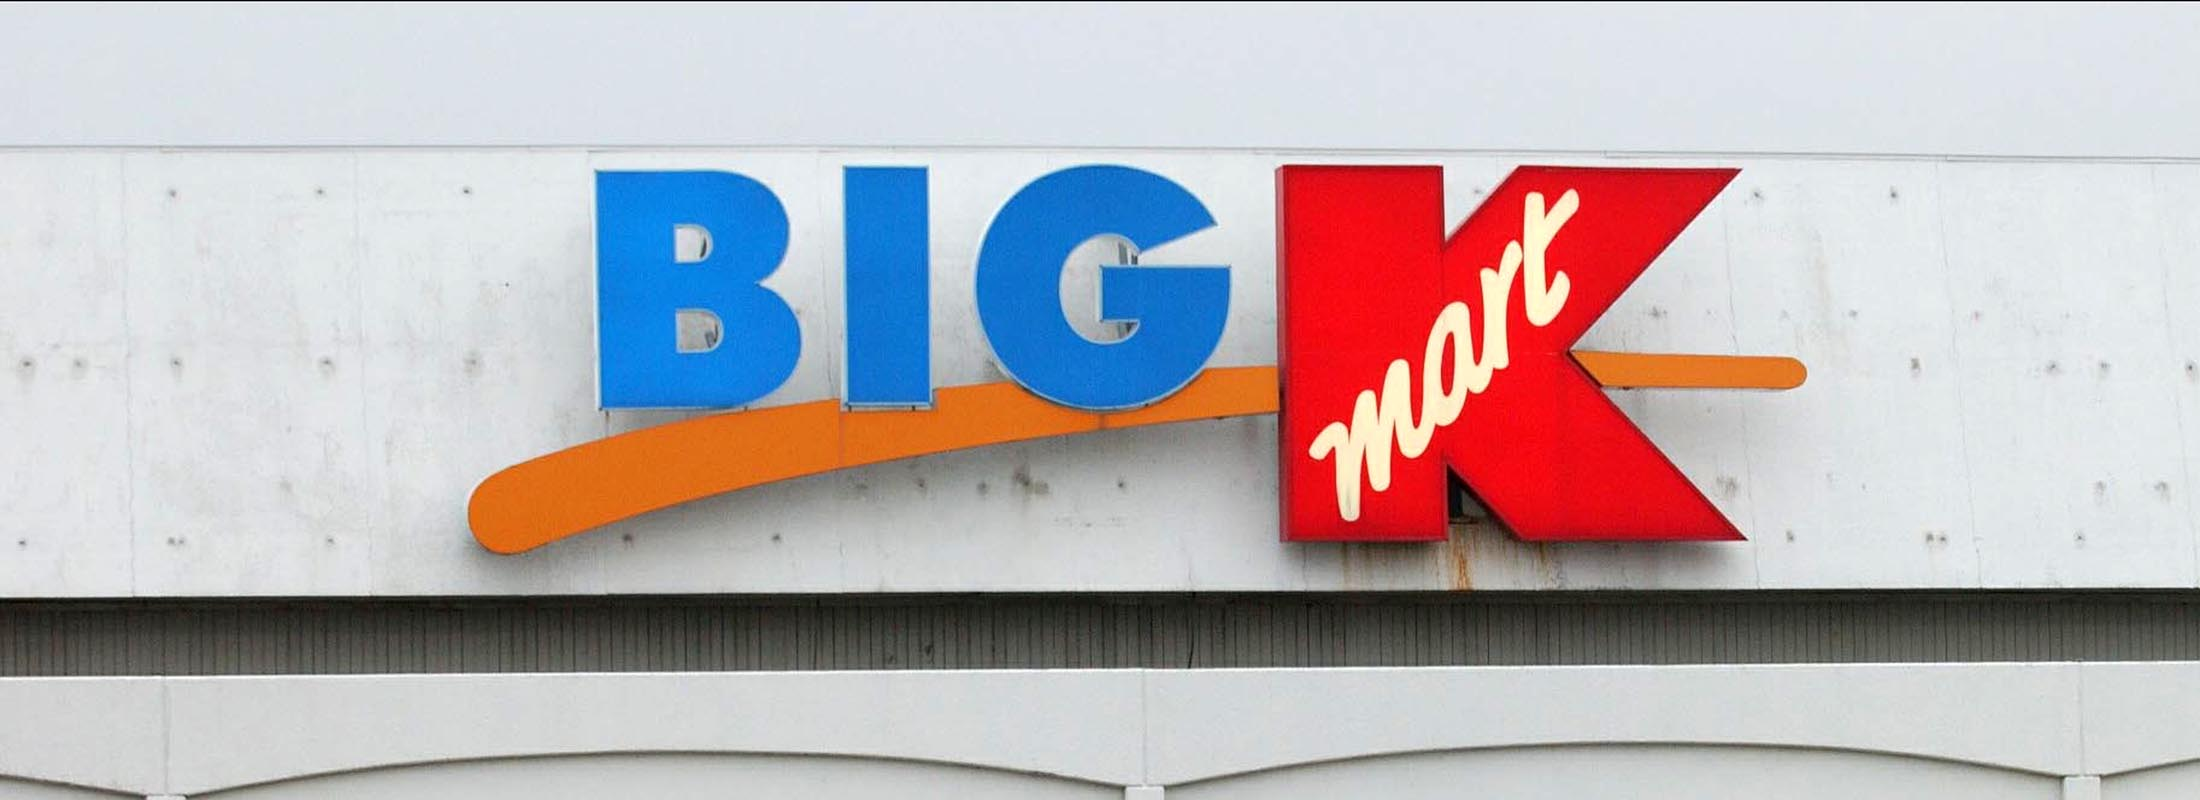 04197f1b012 The Kmart store on Walden Avenue. (News file photo)